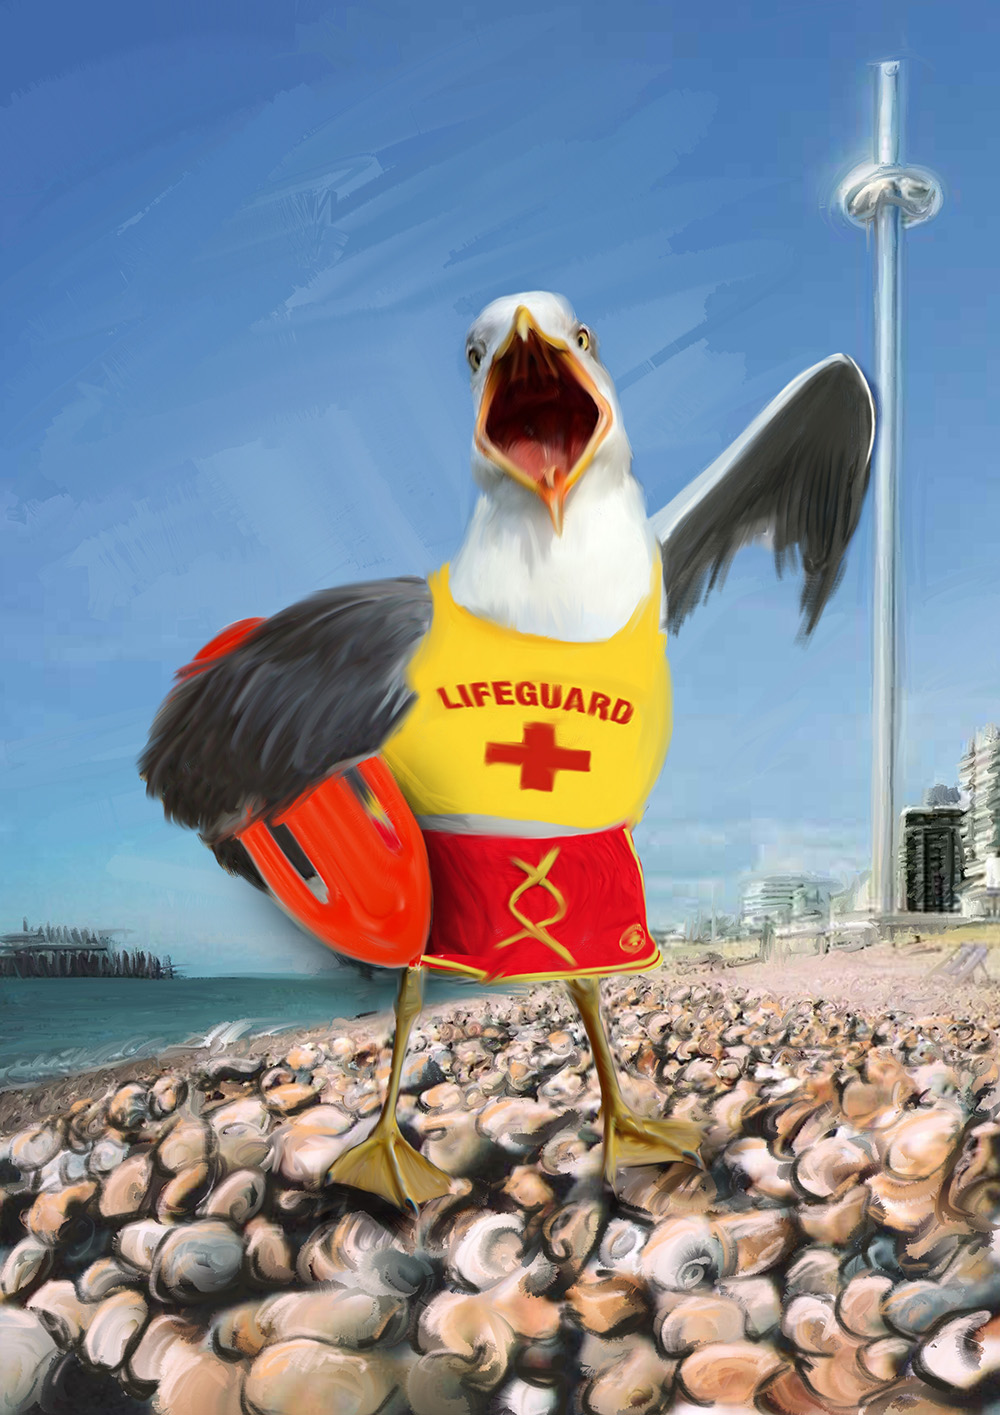 Lifeguard seagull small.jpg